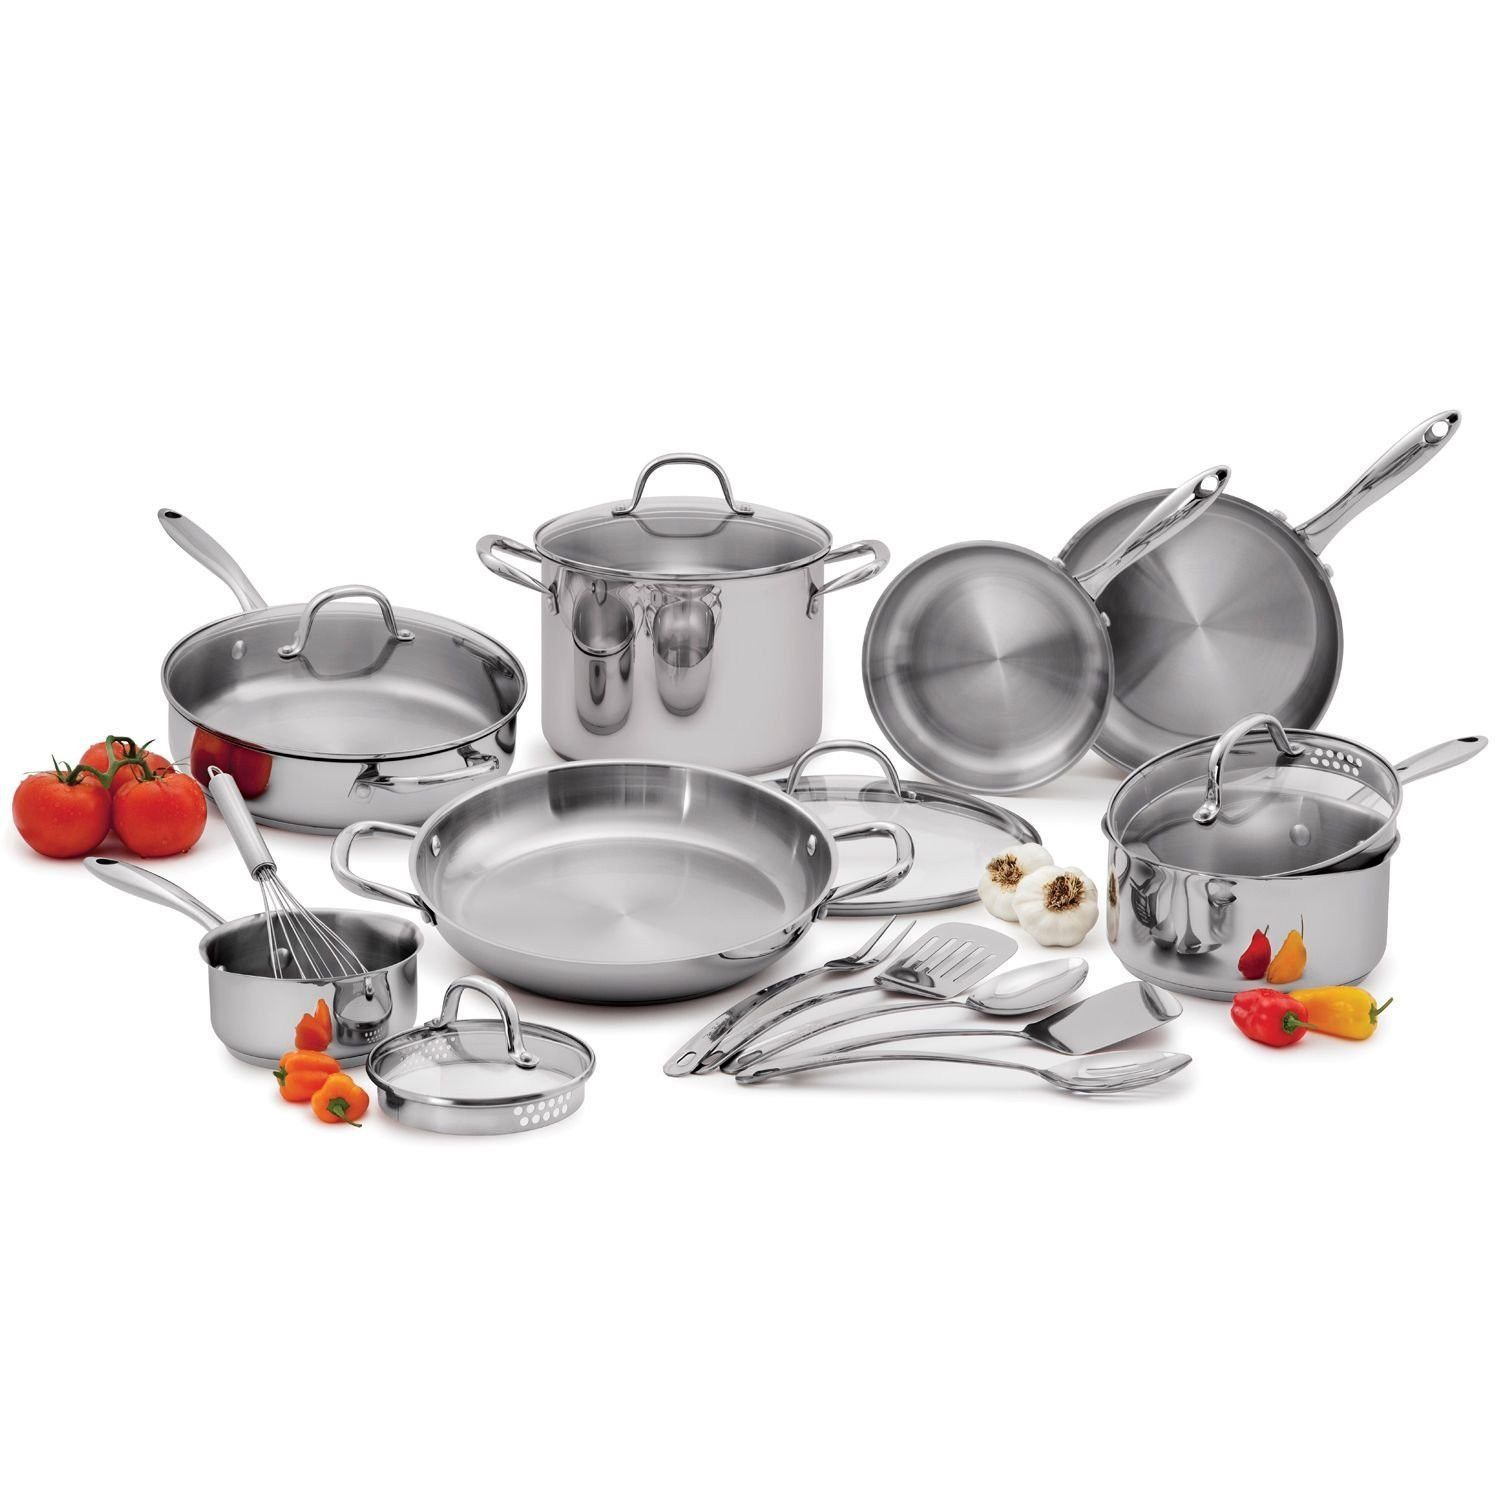 Wolfgang Puck Stainless Steel Cookware Set 18 Pc New Dishes Pots